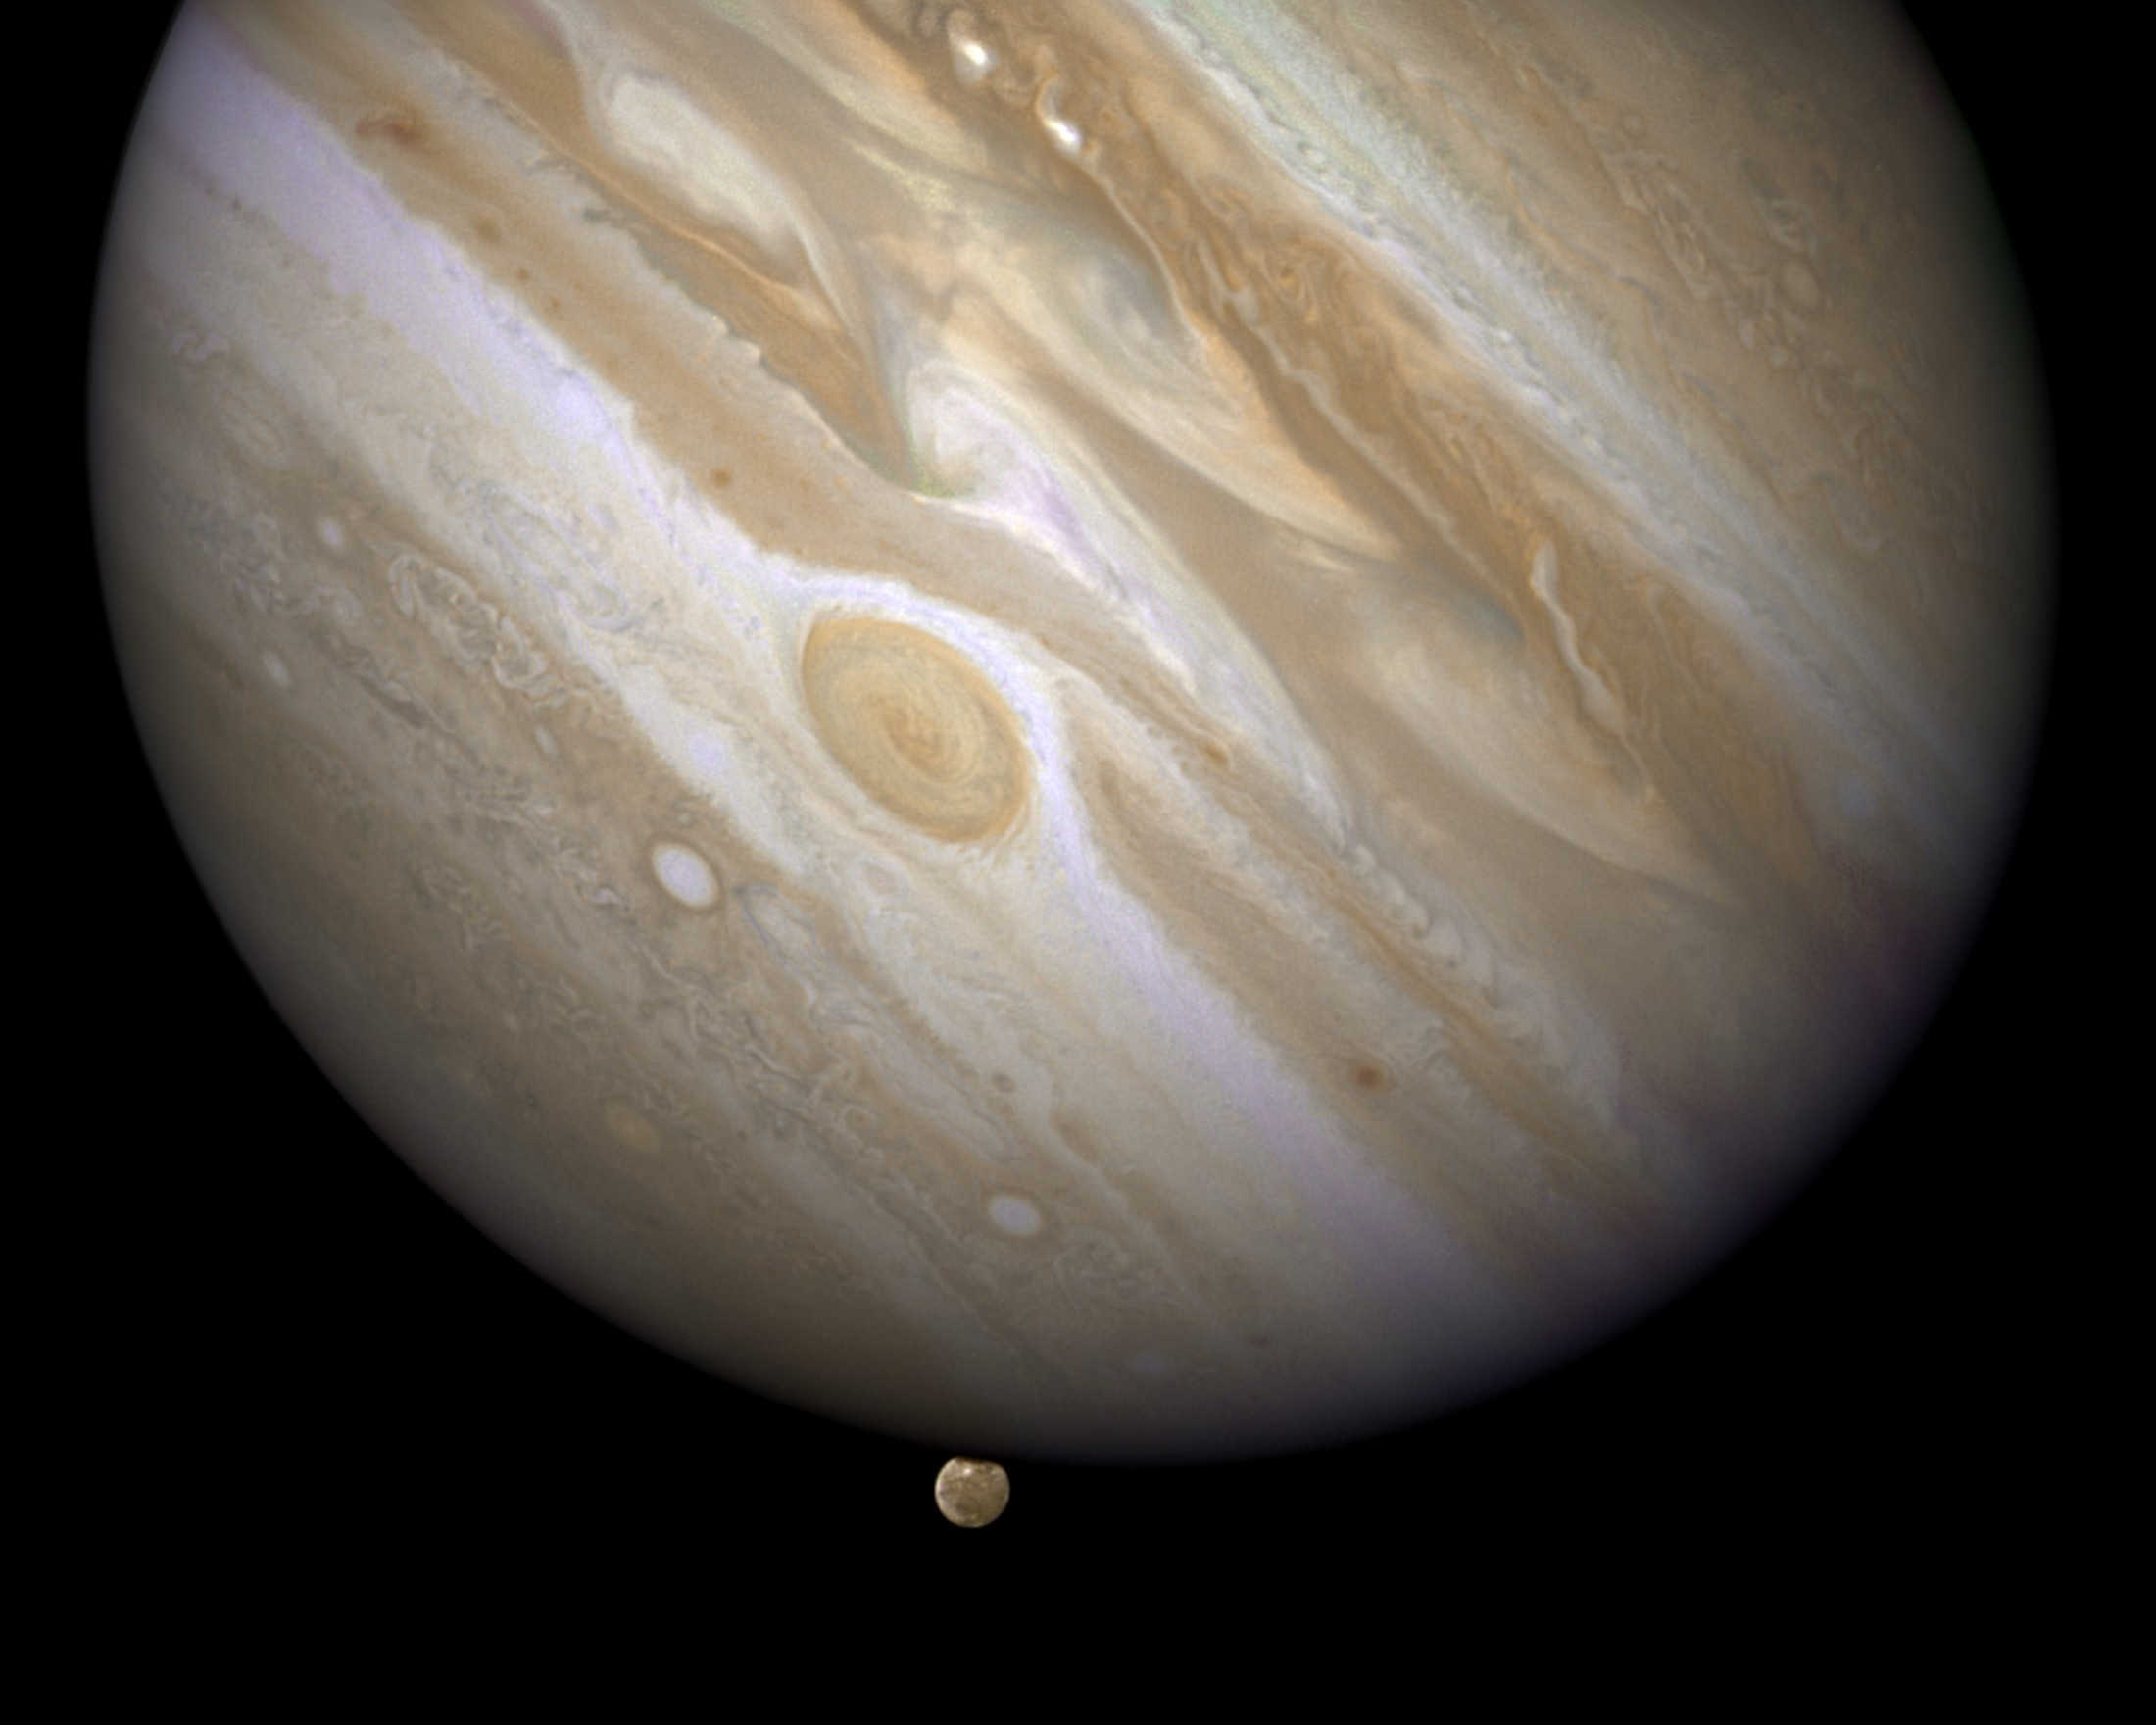 The Planet Jupiter Is Shown With One Of Its Moons